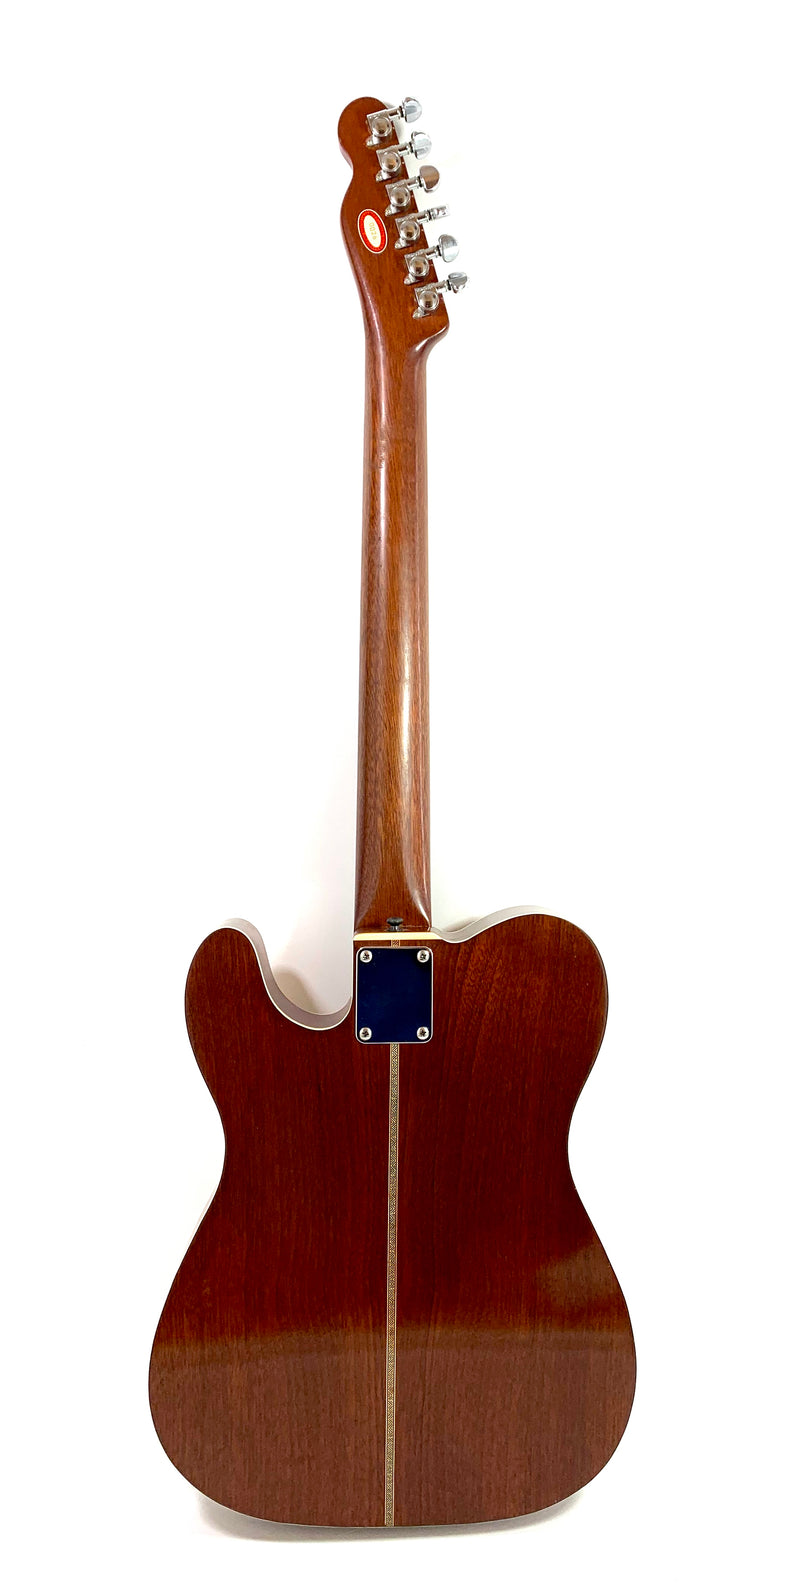 James C. Larson Telecaster Electro-acoustique USA